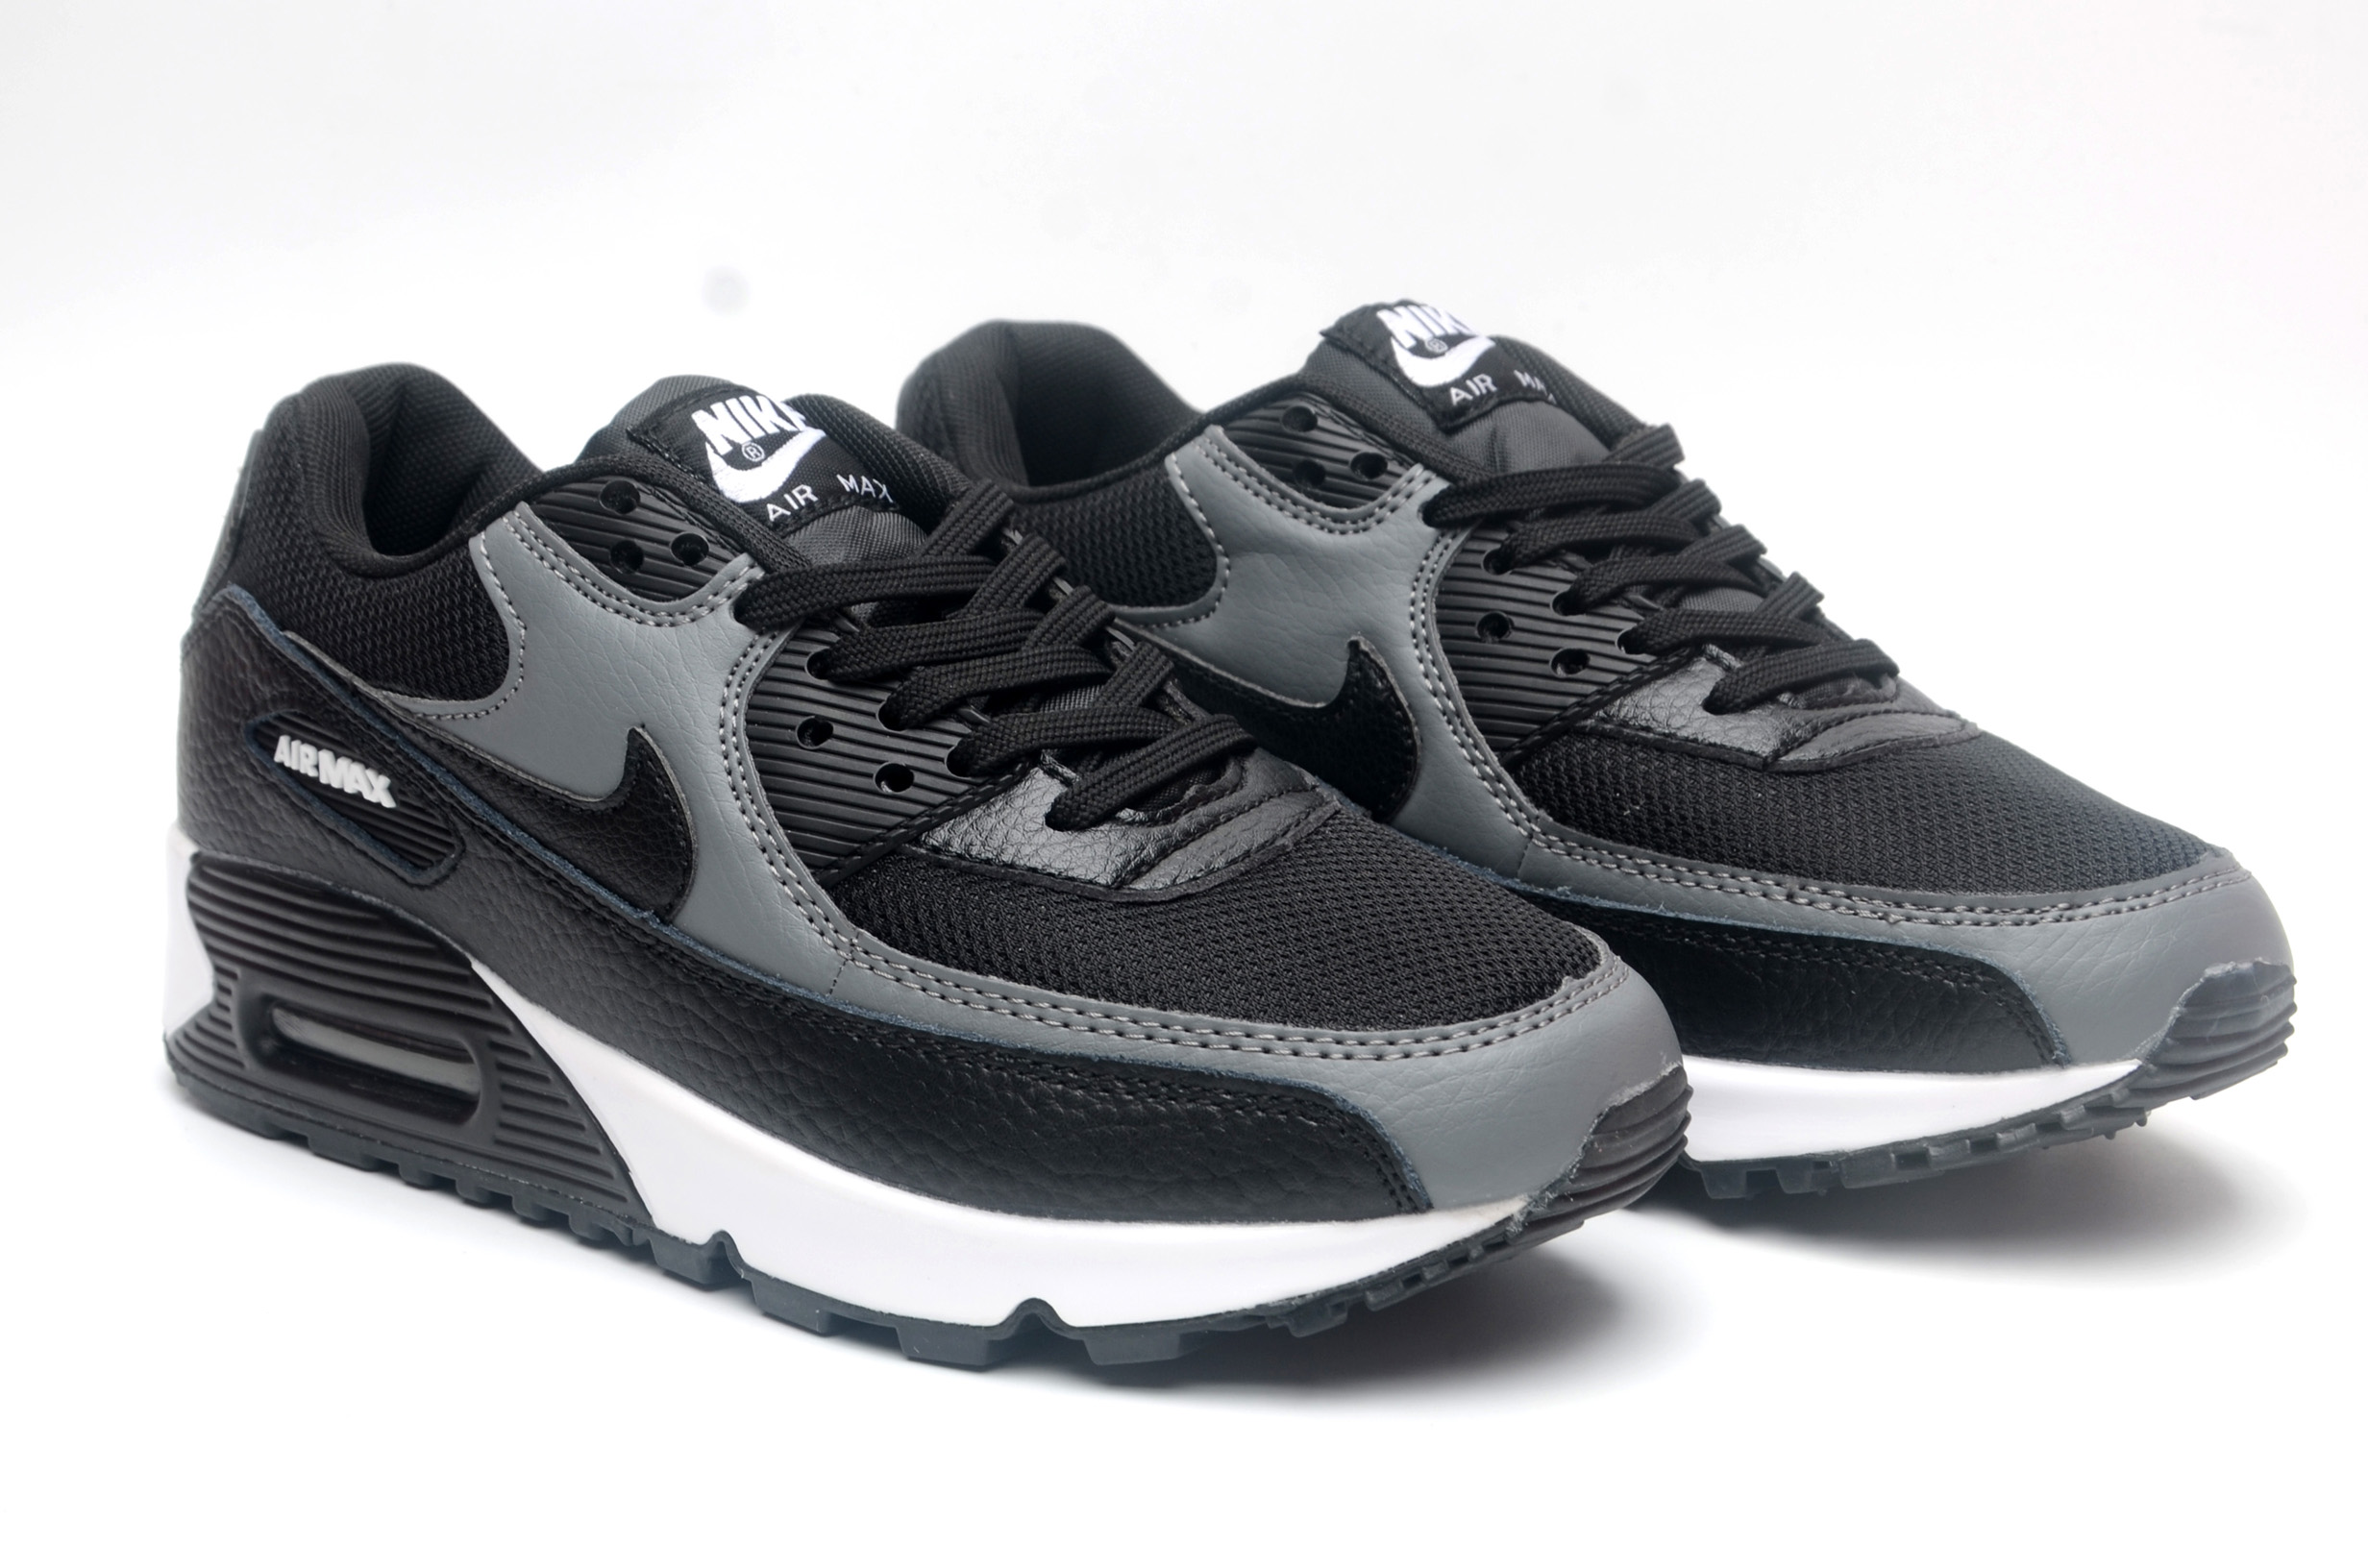 Women's Running weapon Air Max 90 Shoes 028